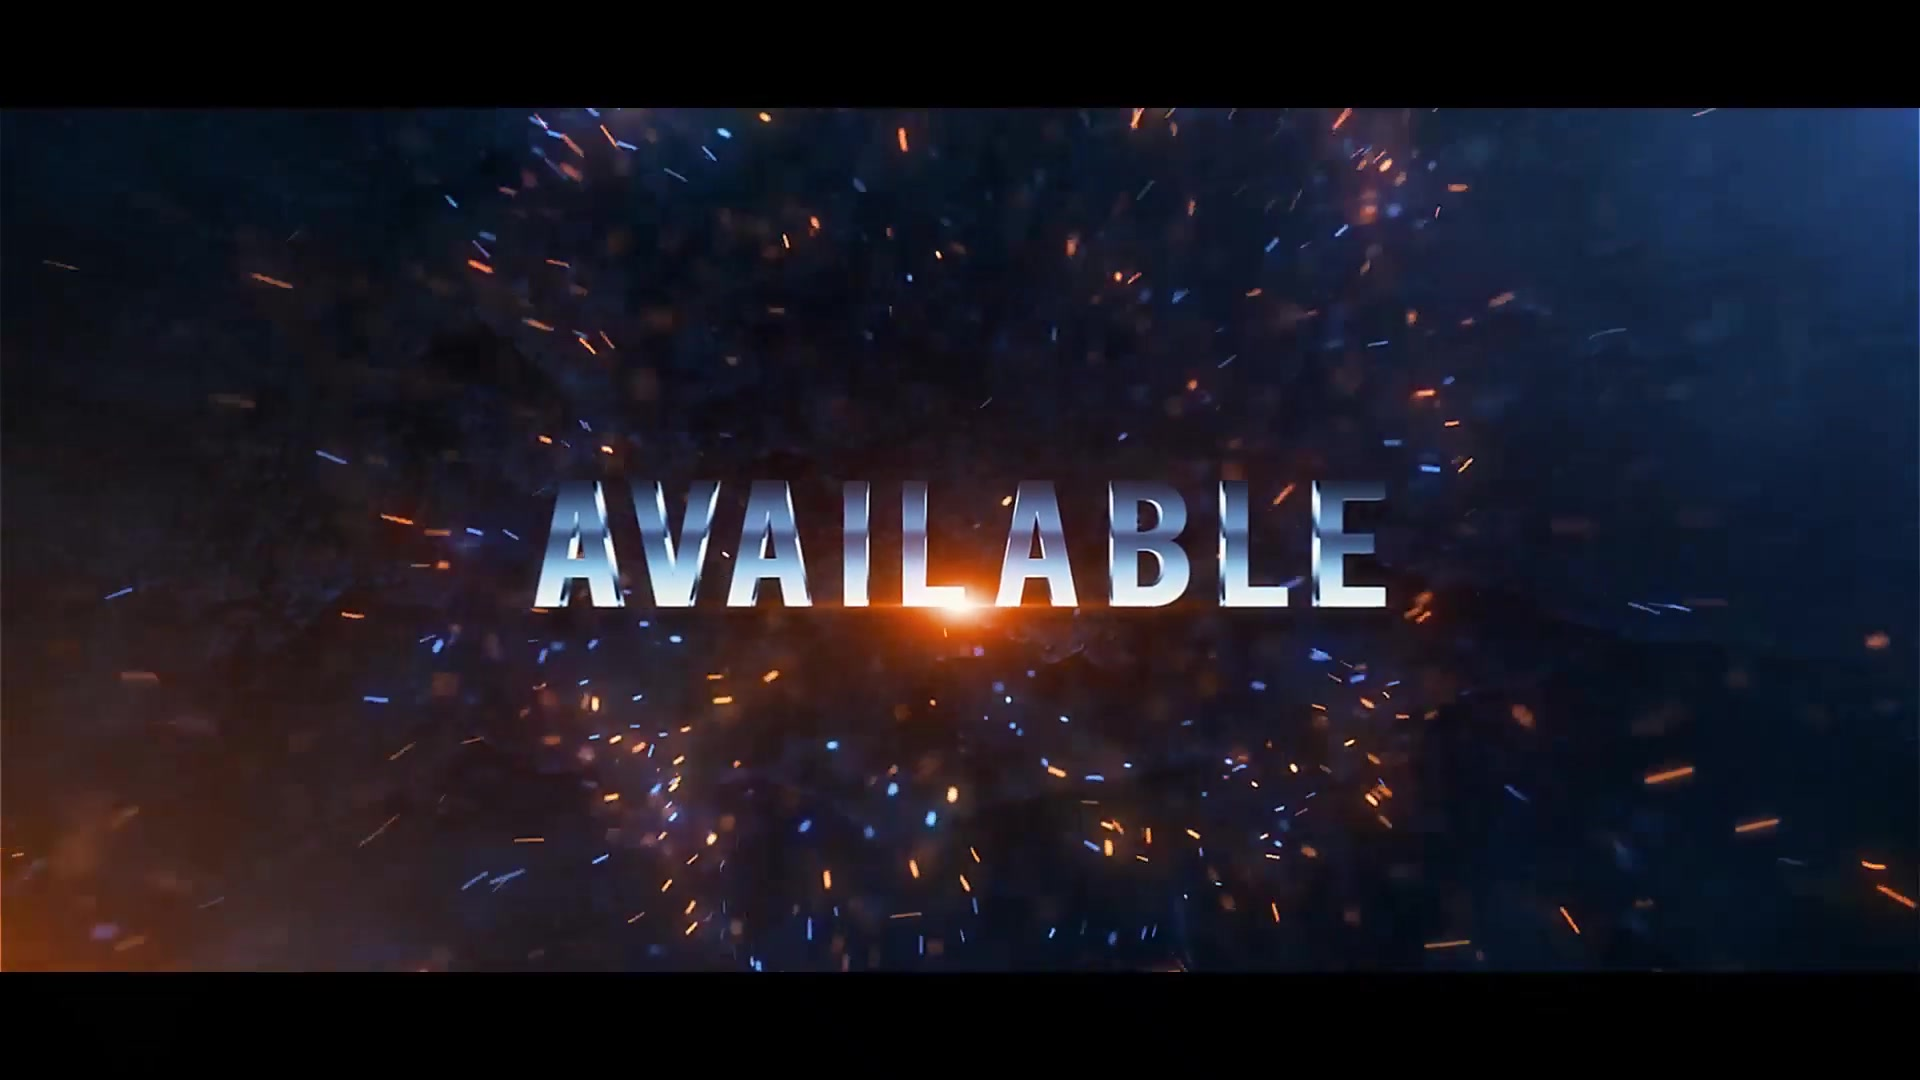 Title Trailer Videohive 20773718 After Effects Image 4